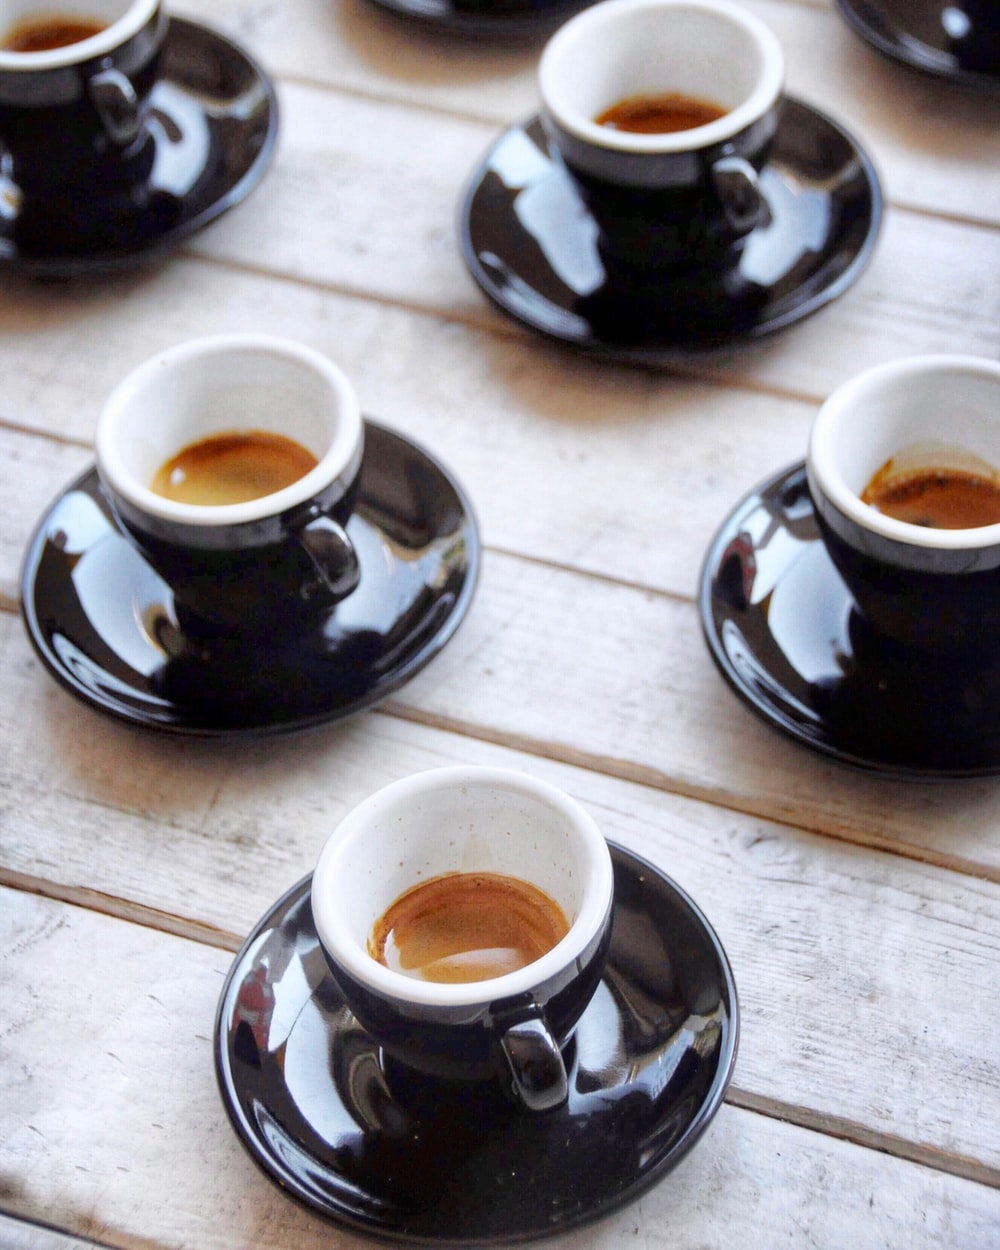 selective focus photography of four black-and-white ceramic cups and saucers